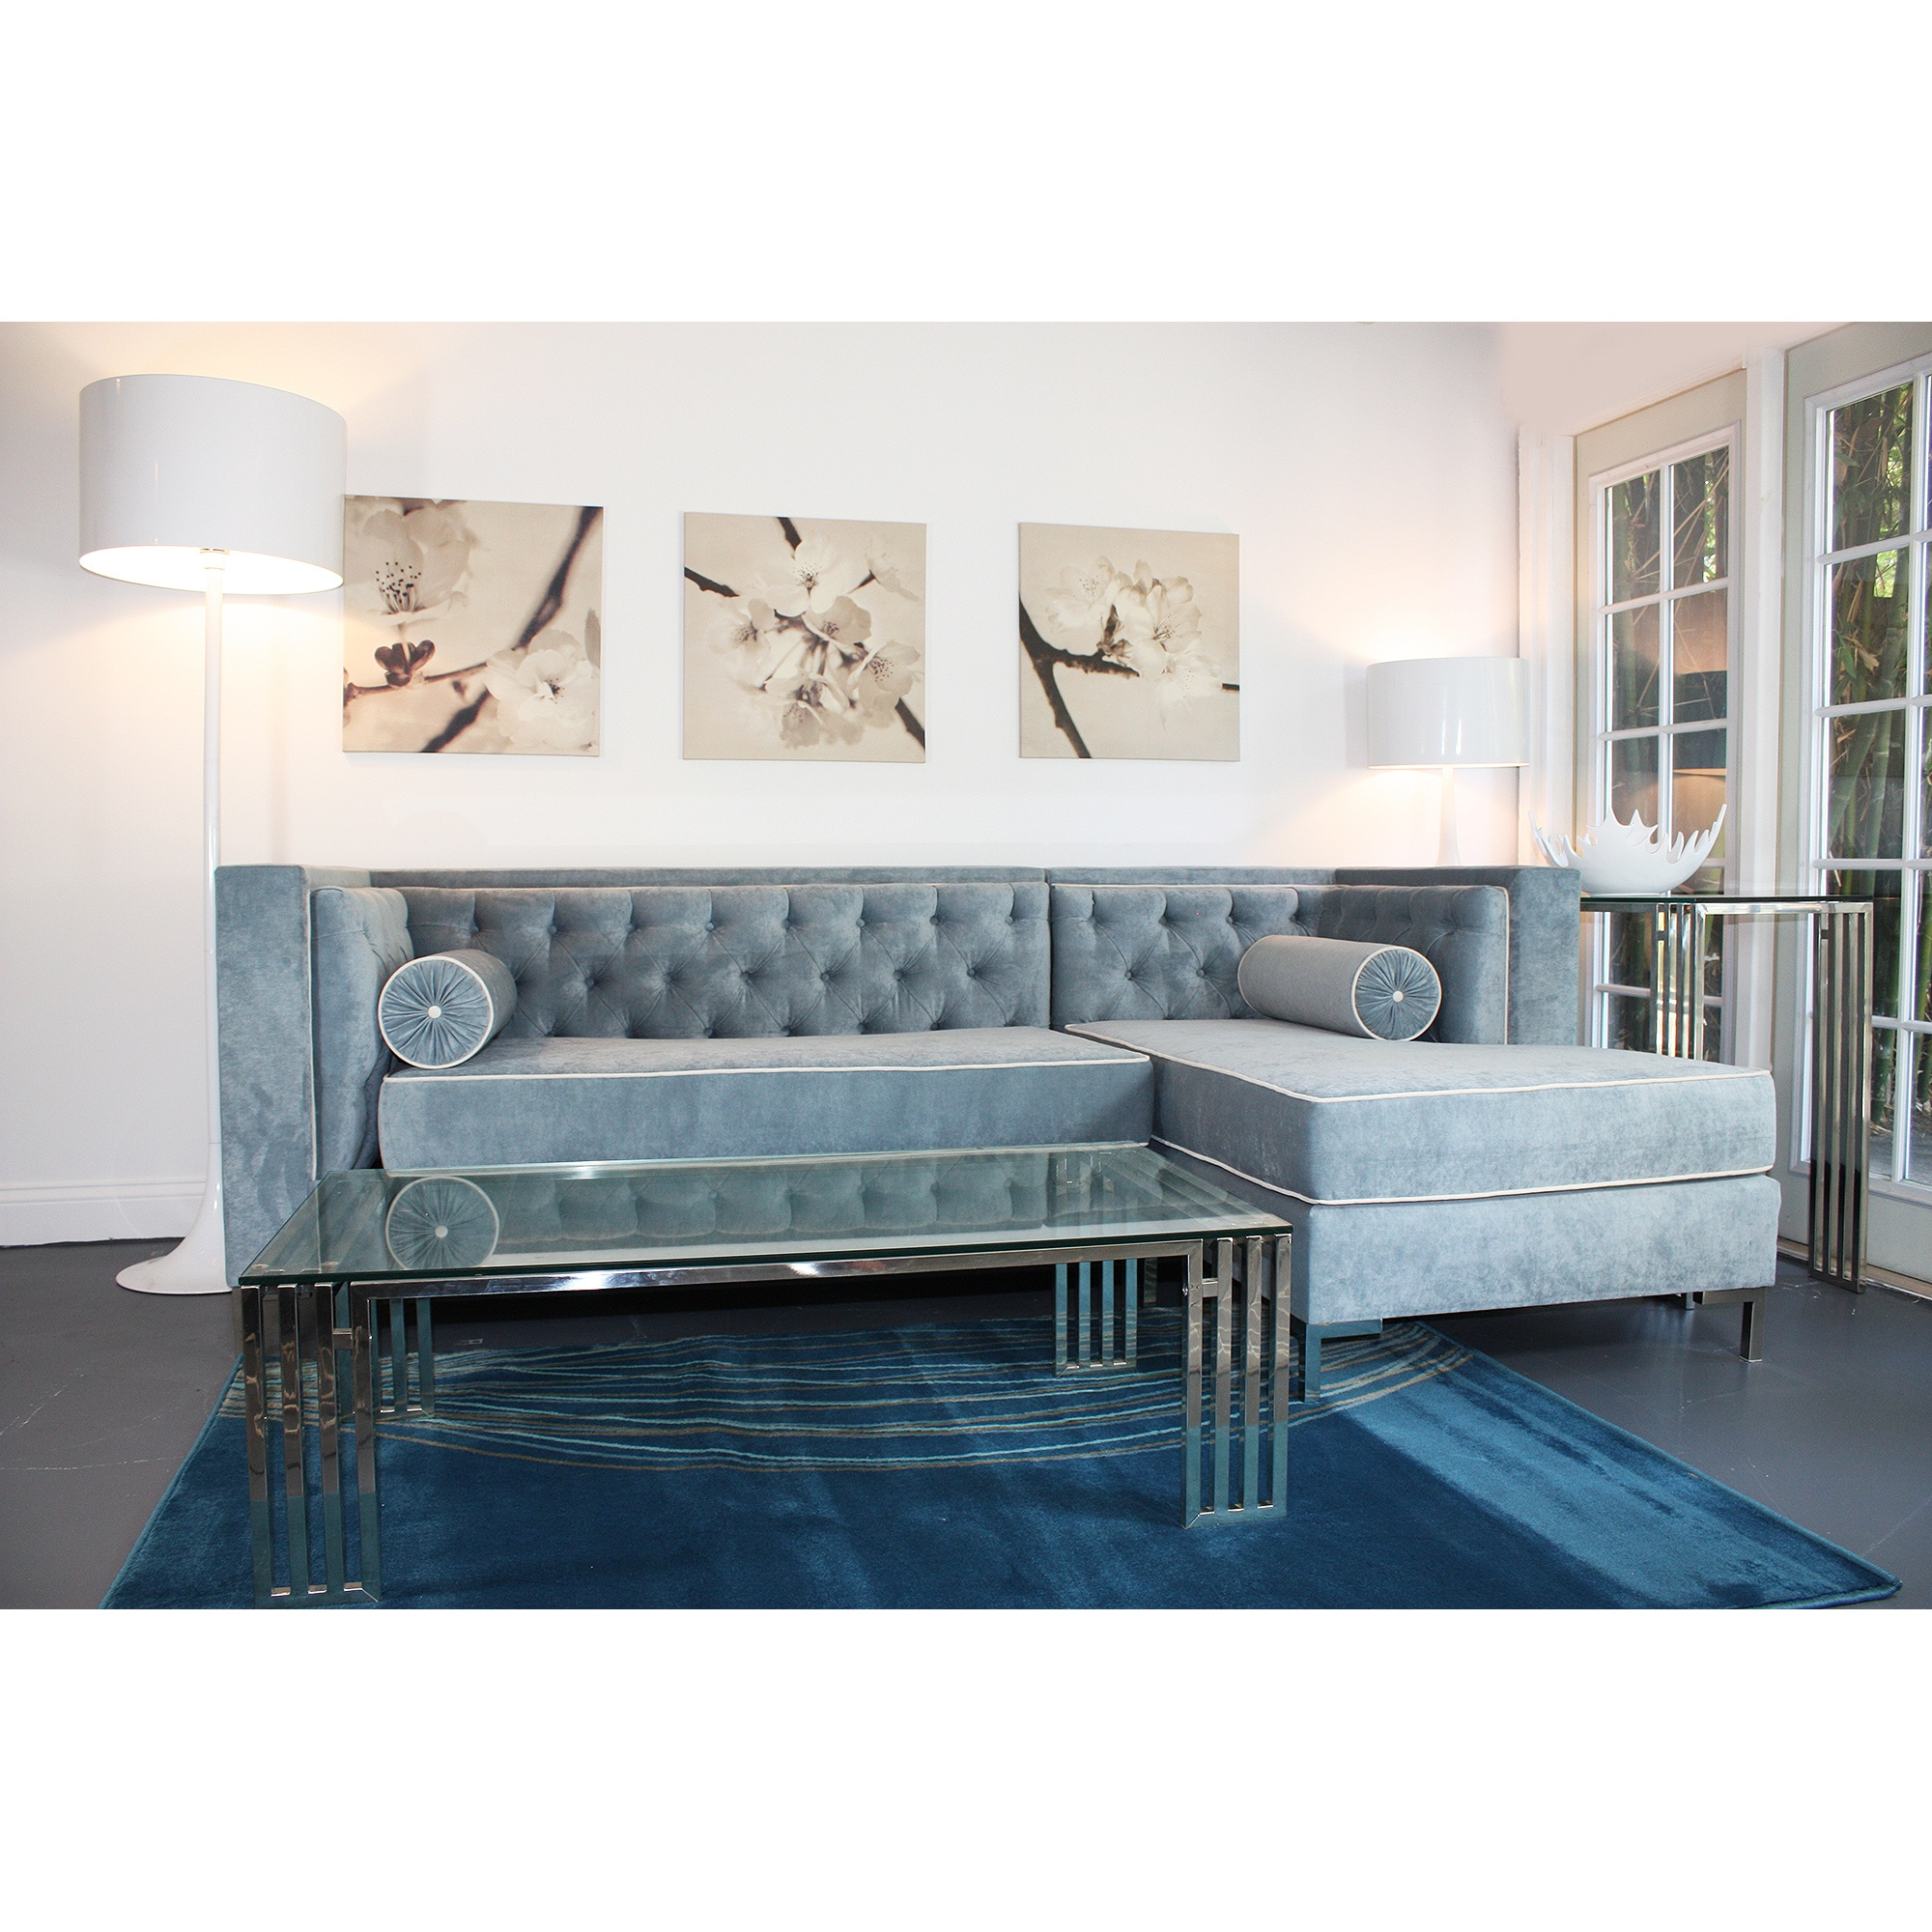 Captivating Wedgewood Blue Tufted 8 Foot Sectional Sofa. Selfbutler Be Inspired